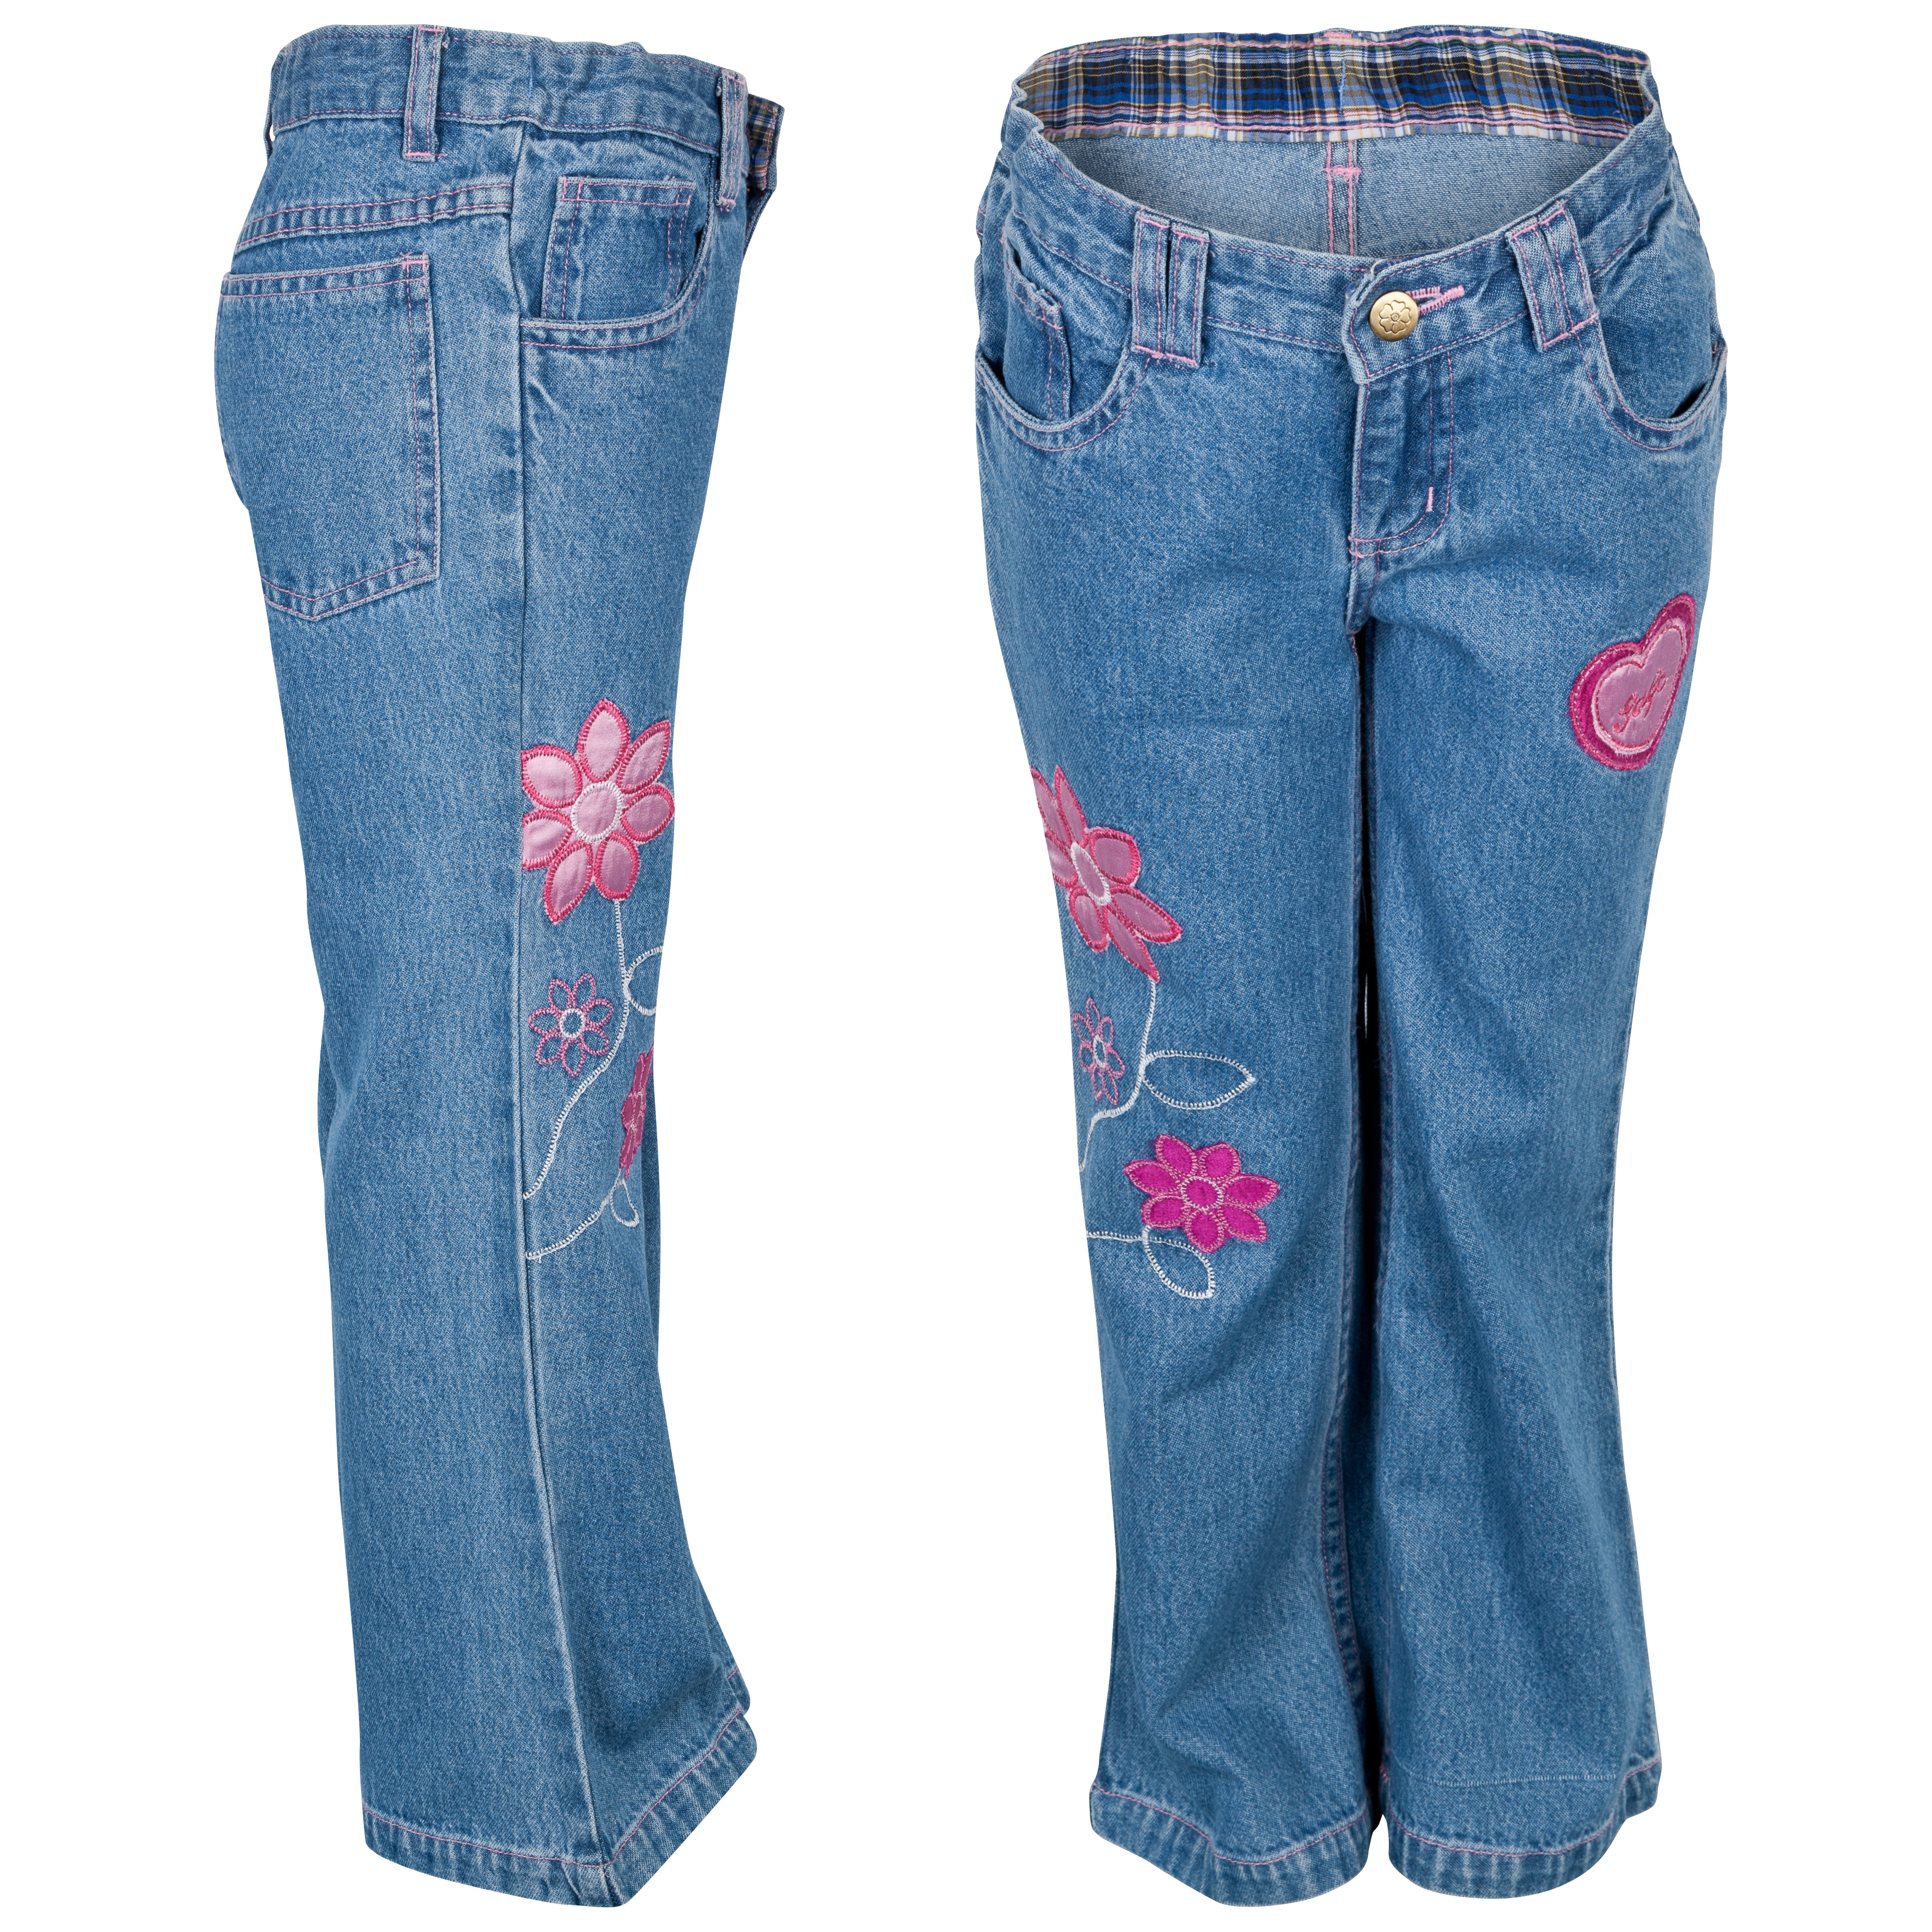 Sunderland Childs Jeans